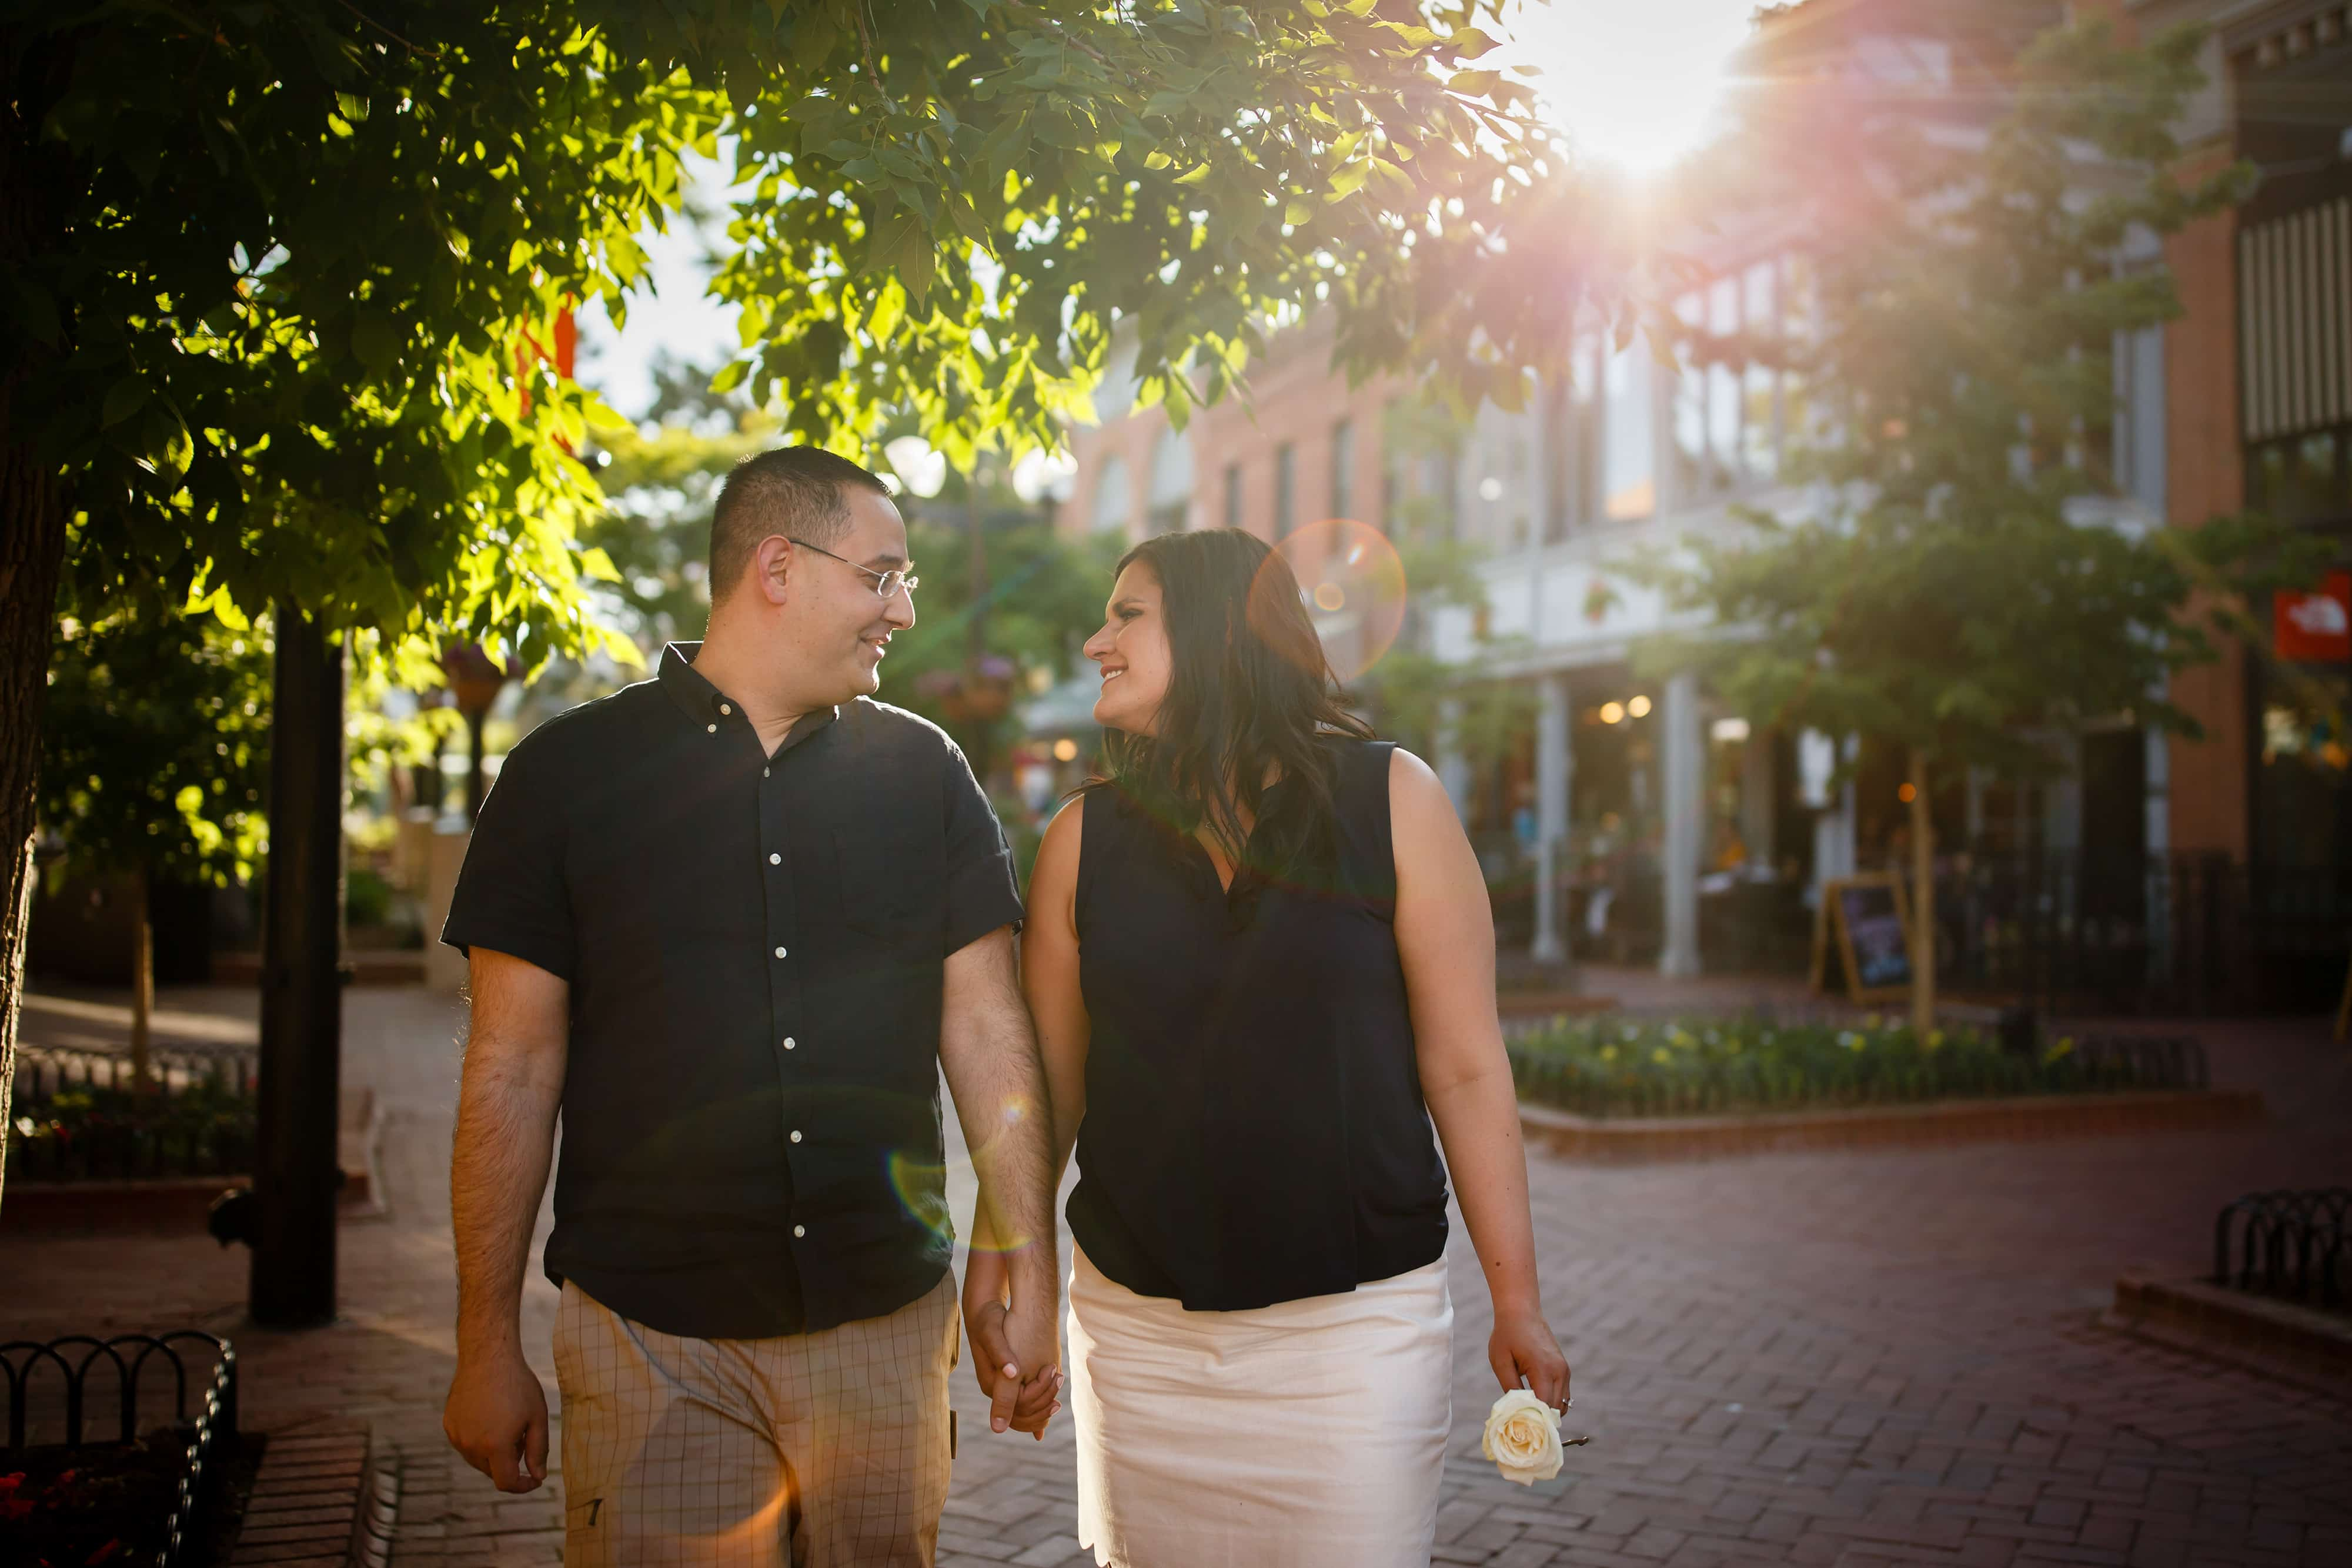 Dimitra and George walk together during their engagement photos in Boulder Colorado on Pearl Street